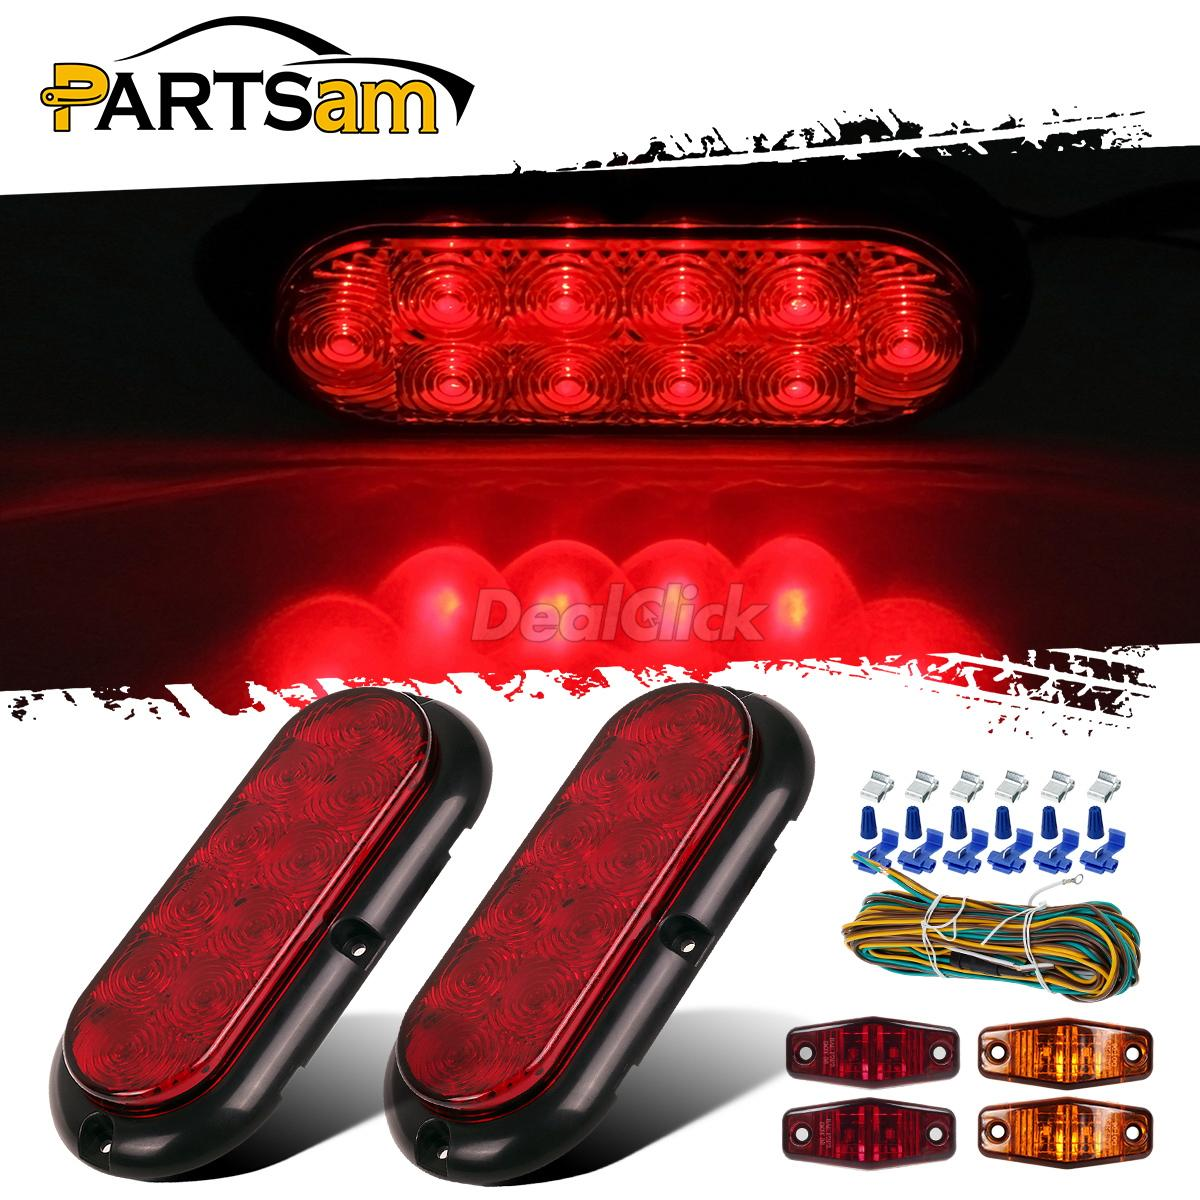 hight resolution of details about 2xred stop turn tail lights 4xred amber side marker lamps w wire harness utility